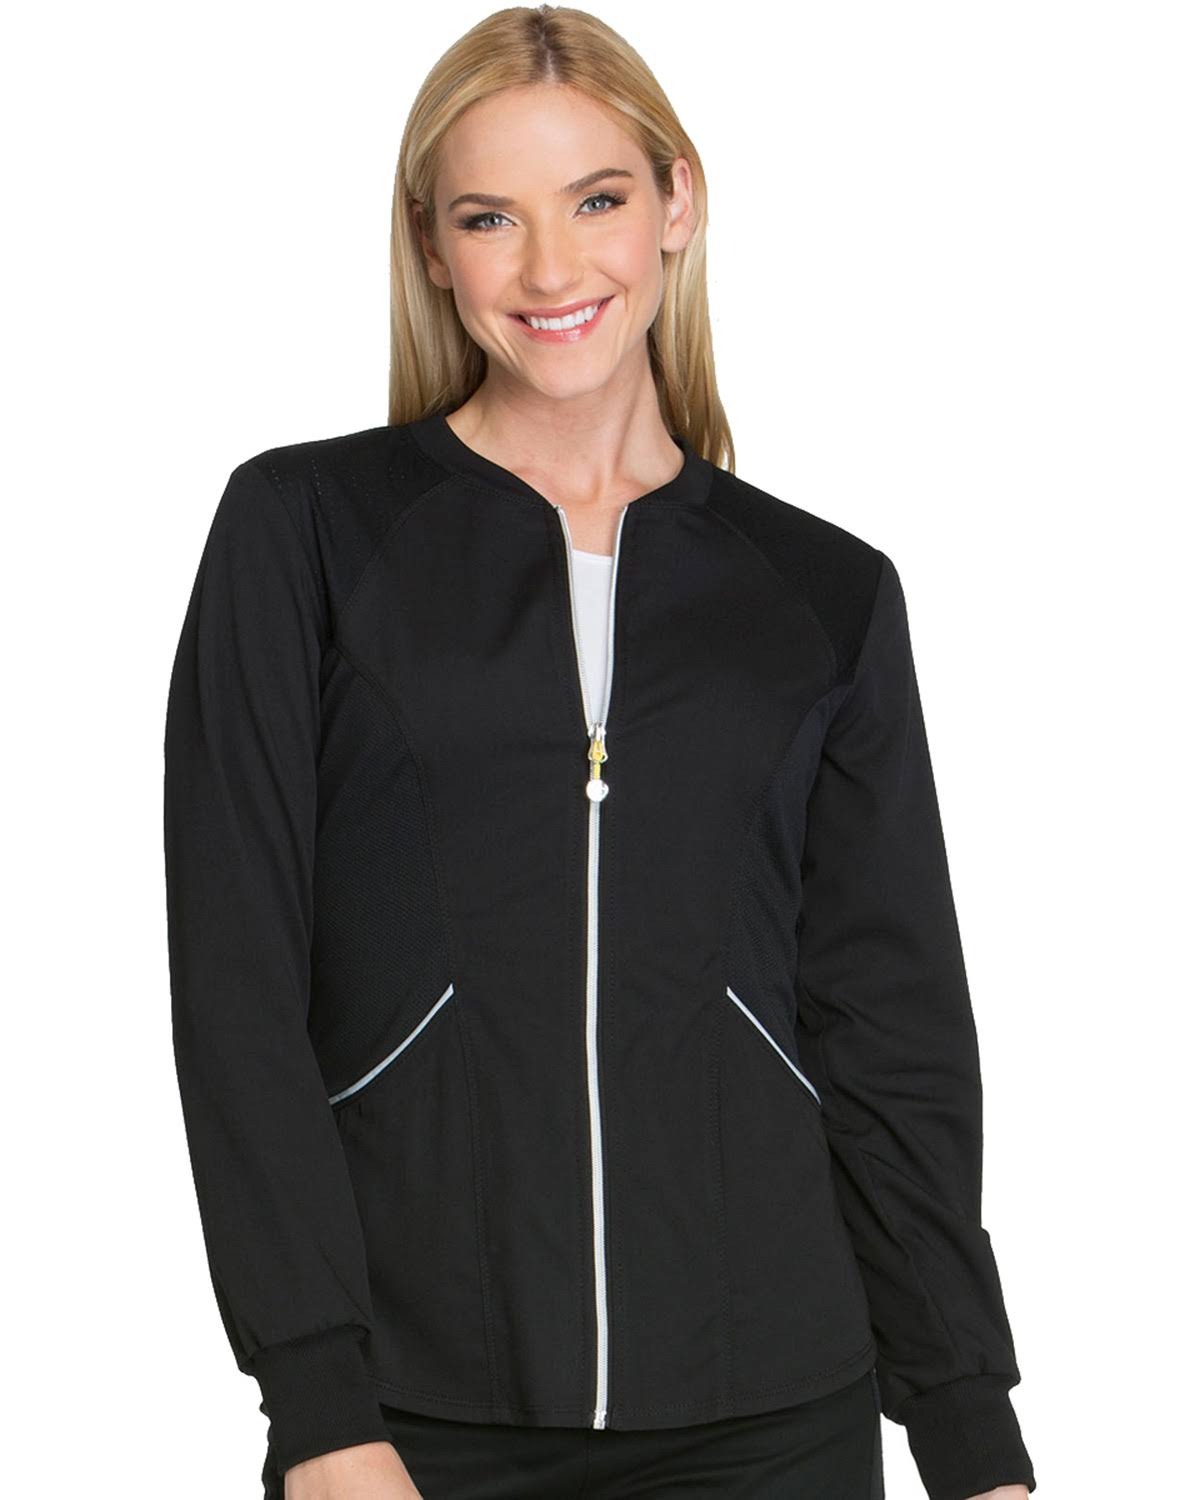 Cherokee Women's Luxe Sport Zip Front Warm-Up Jacket, Black, 3XL